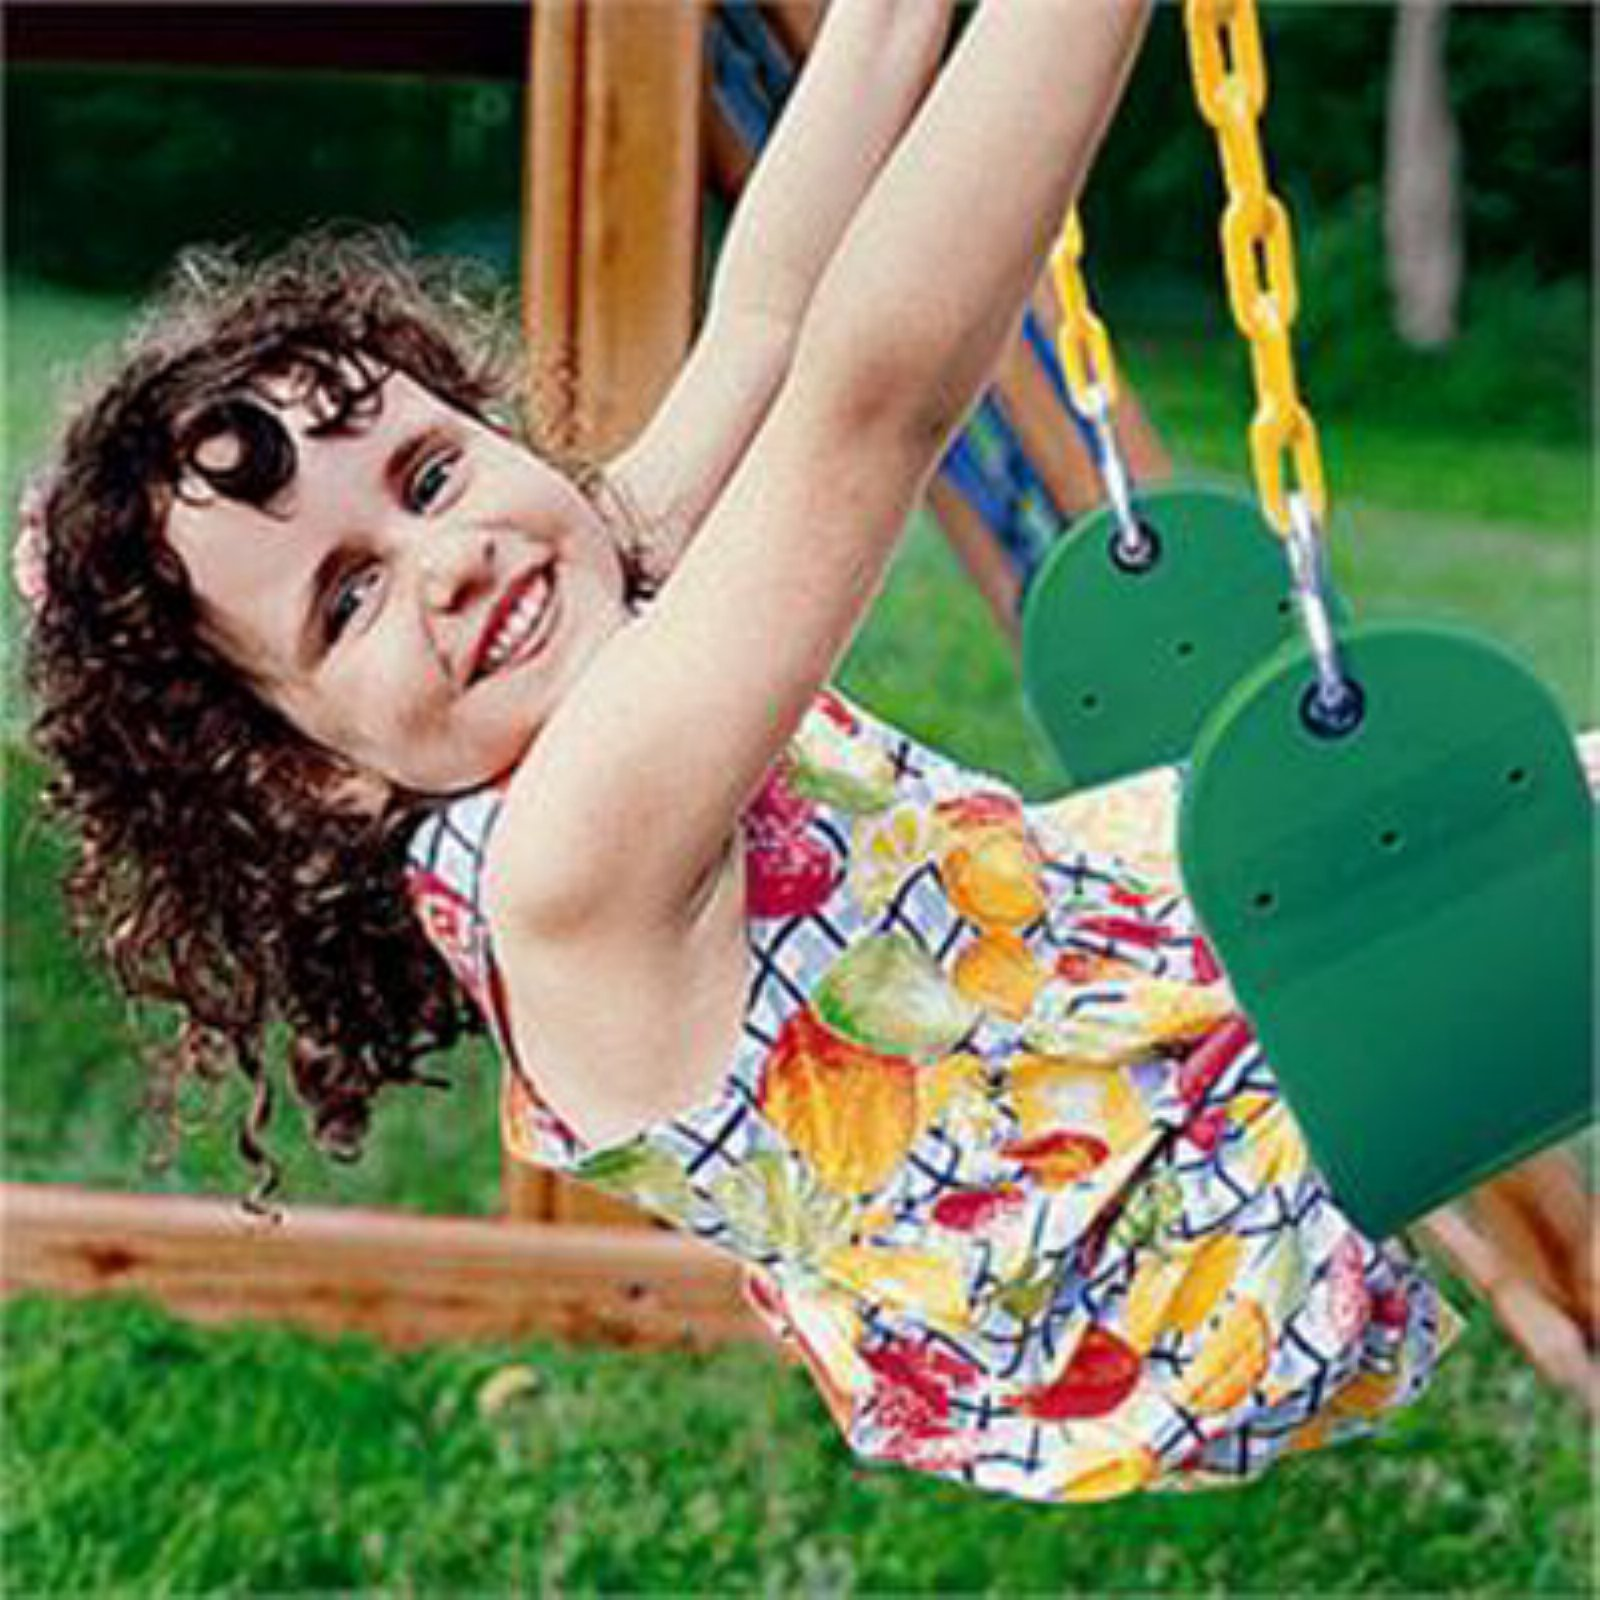 Eastern Jungle Gym Sling Swing Seat